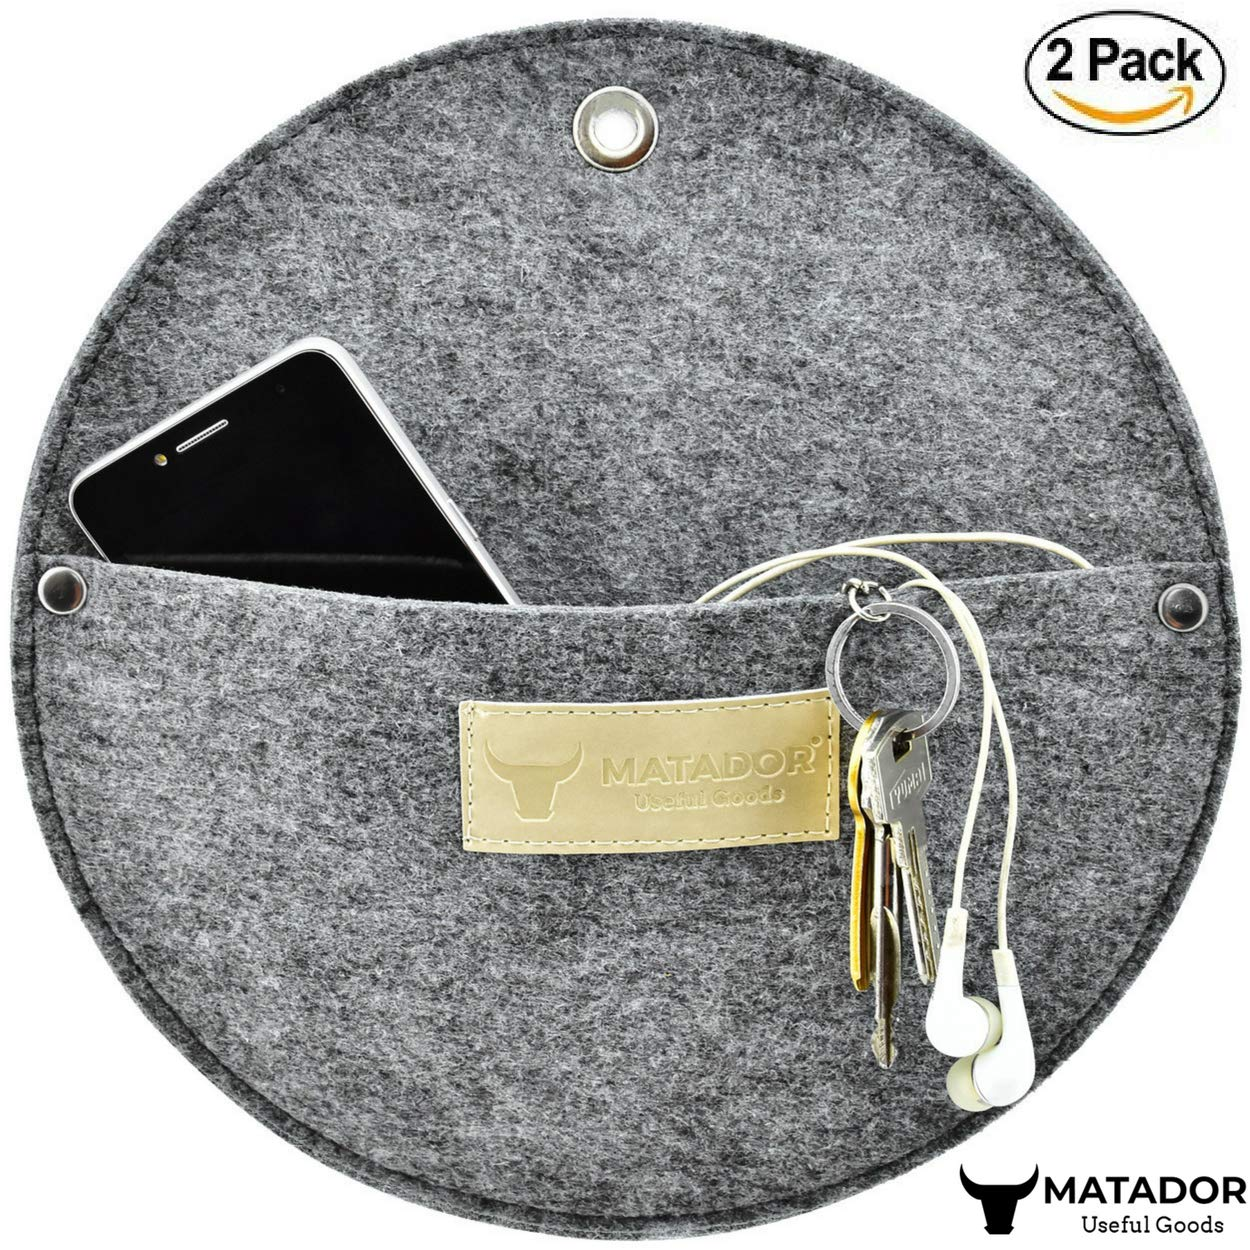 Matador Useful Goods   Wall Mount Key Holder for Entryway, Kitchen, Office   Mail Sorter, Letter Organizer, 10x10 inches (Pack of 2, Grey Felt)